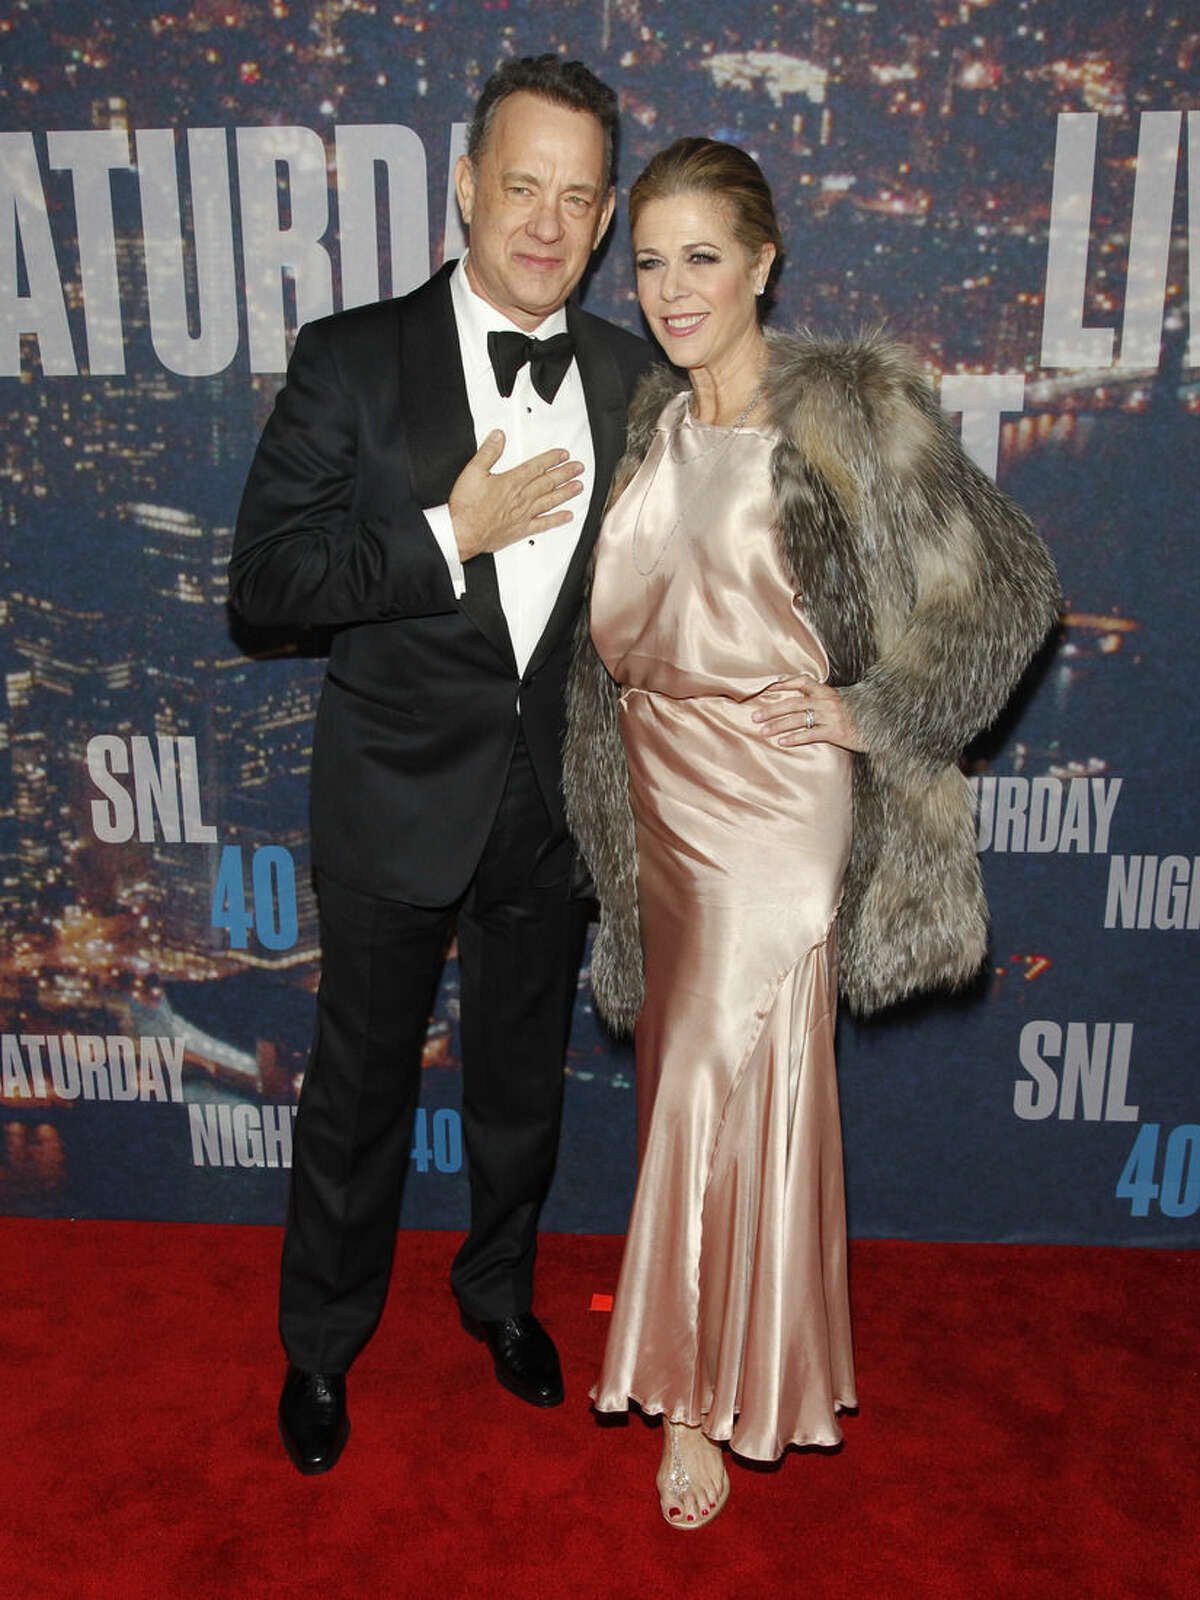 Tom Hanks, left, and Rita Wilson, right, attend the SNL 40th Anniversary Special at Rockefeller Plaza on Sunday, Feb. 15, 2015, in New York. (Photo by Andy Kropa/Invision/AP)